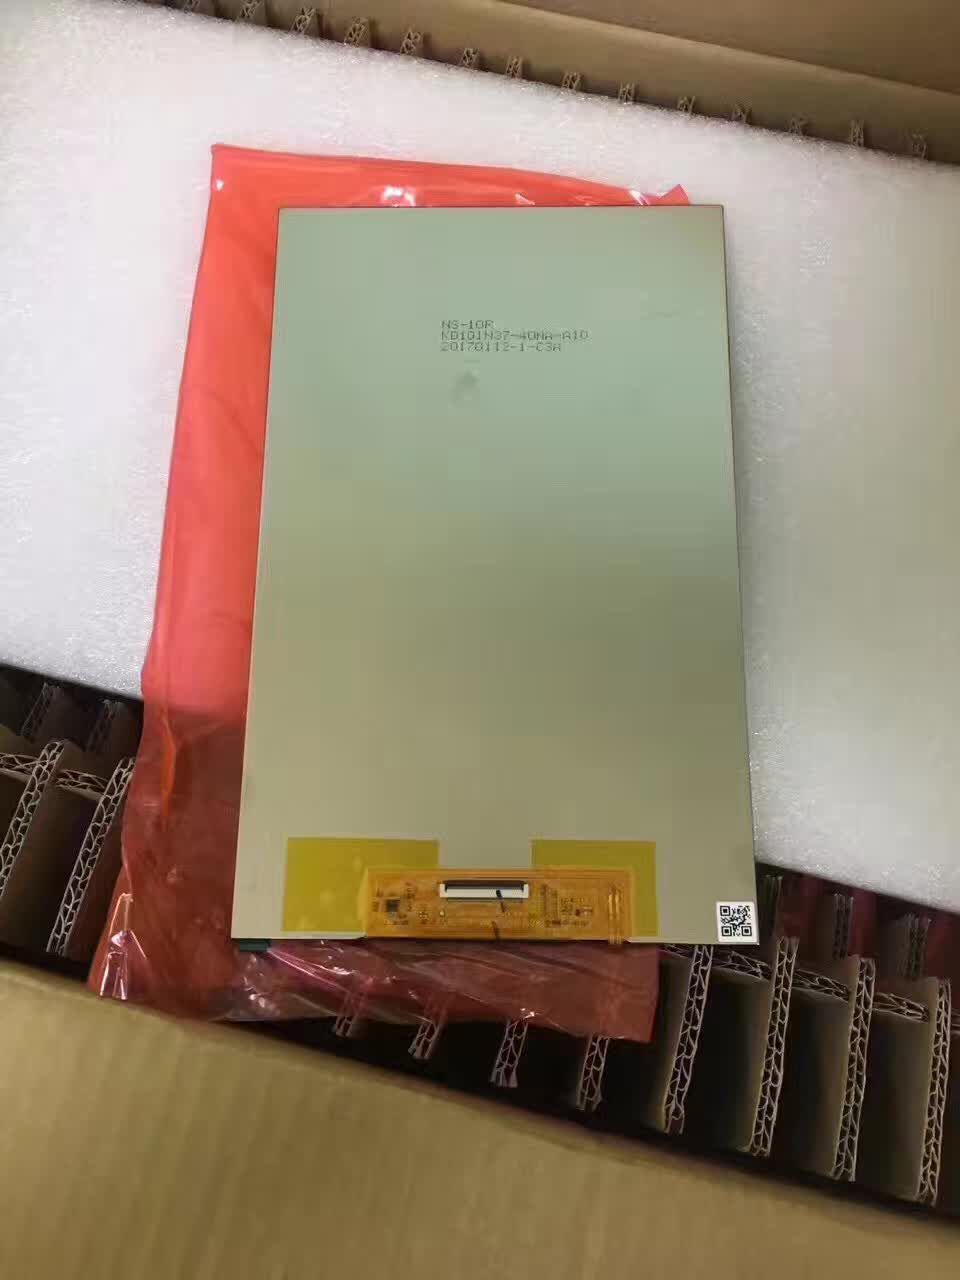 New 10.1 inch tablet LCD screen KD101N37-40NA-A10-REVA KD101N37-40NA-A10 free shipping hsd103ipw1 a10 hsd103ipw1 lcd displays screen